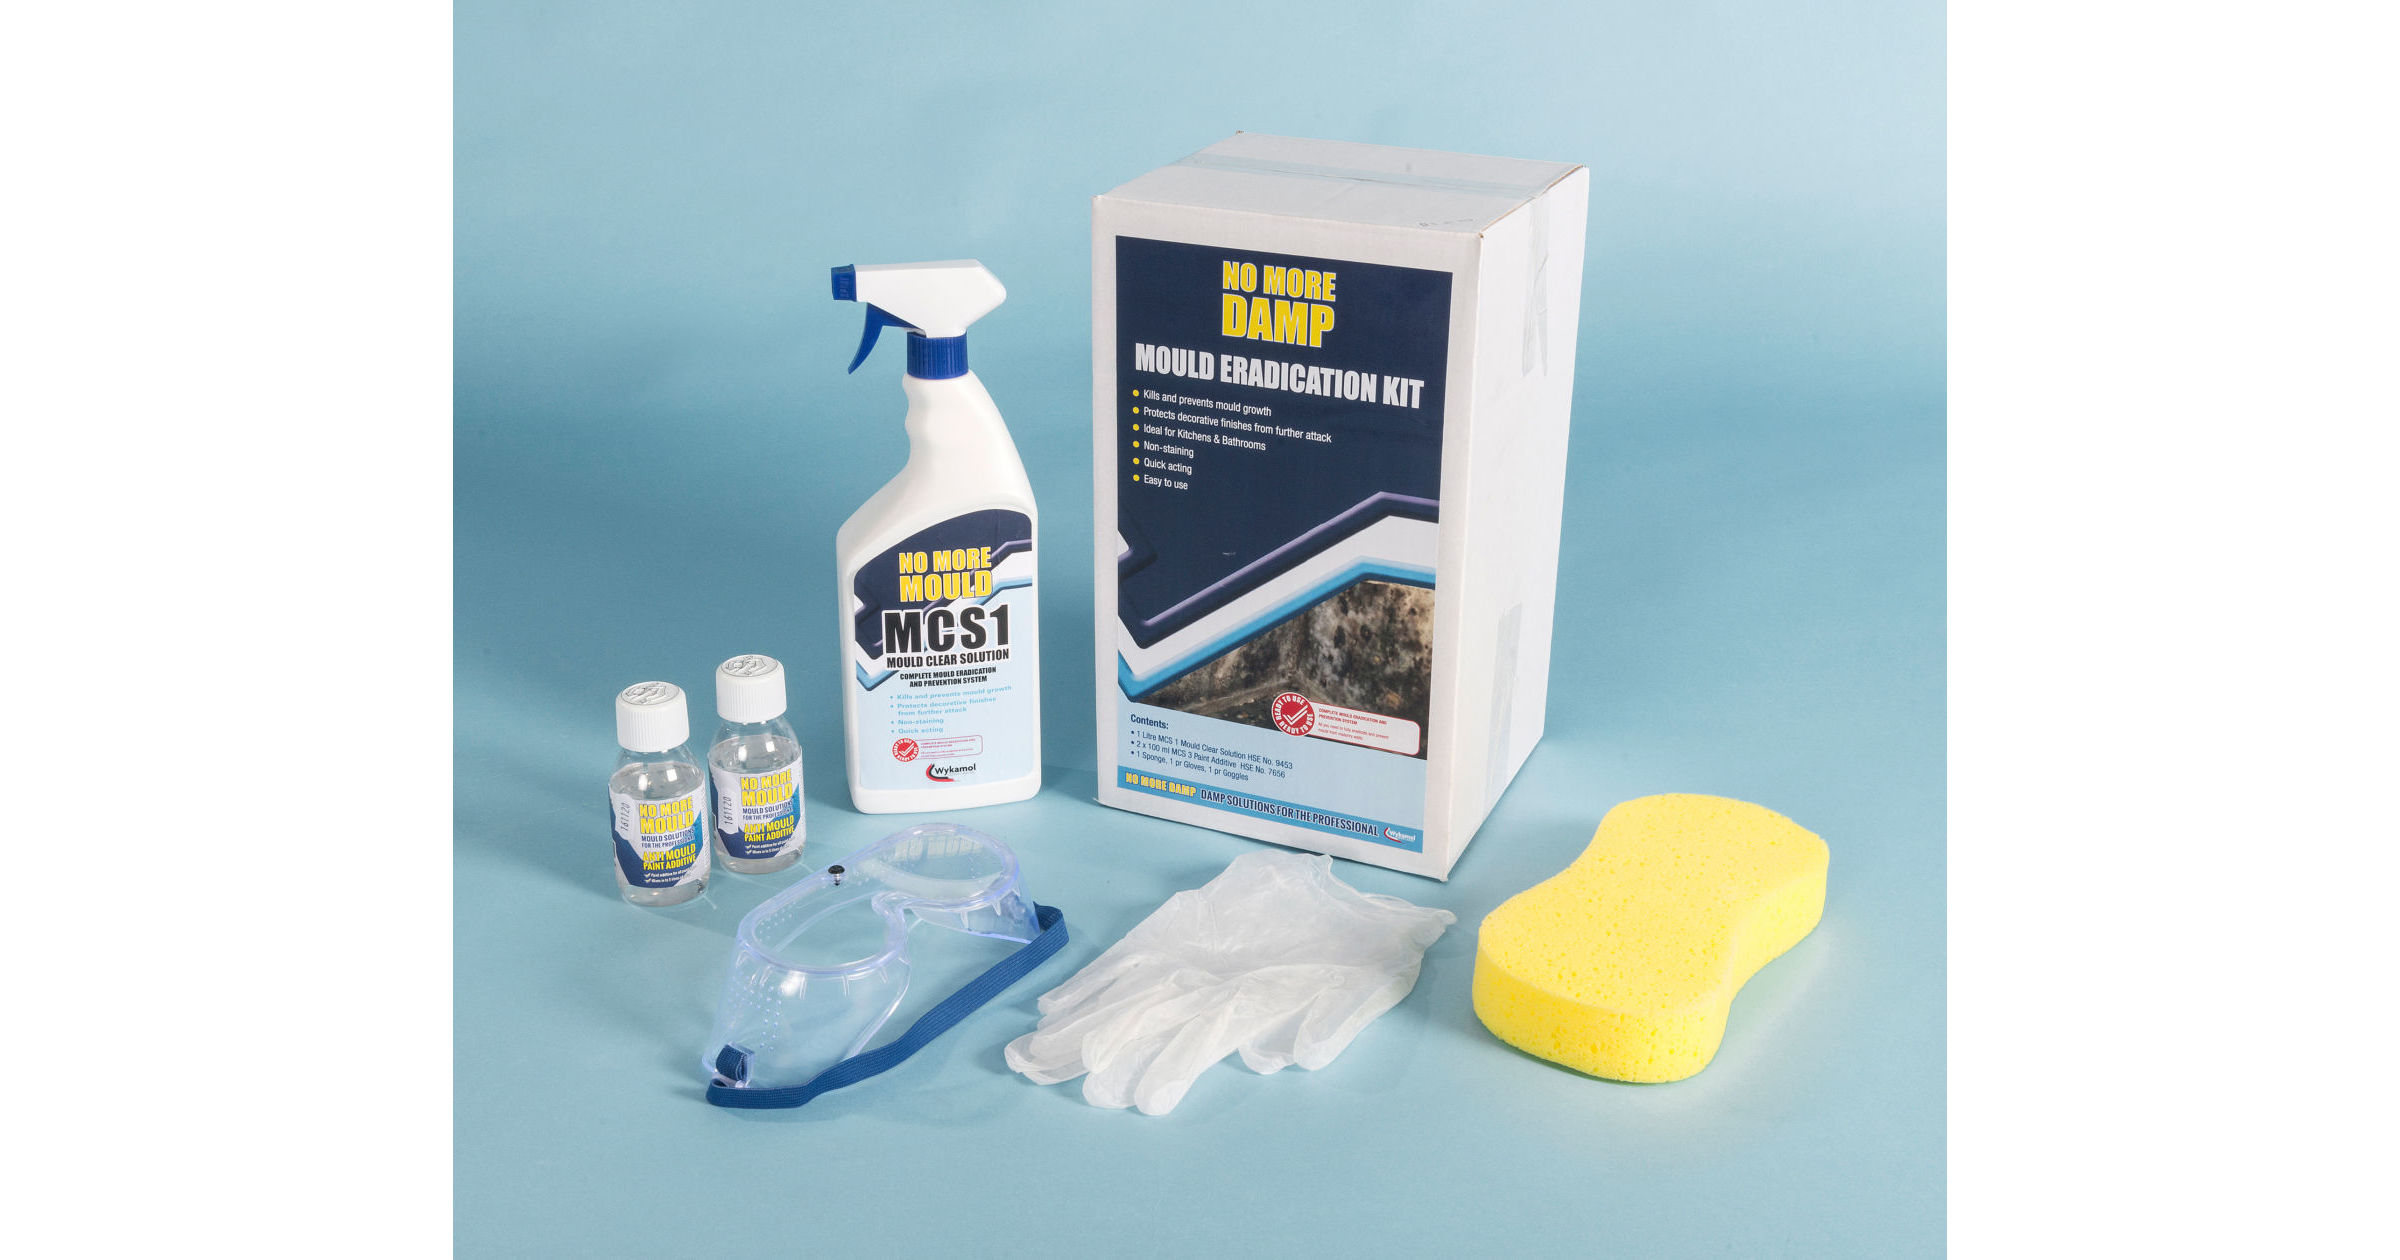 The Mould Remover Kit from Twistfix